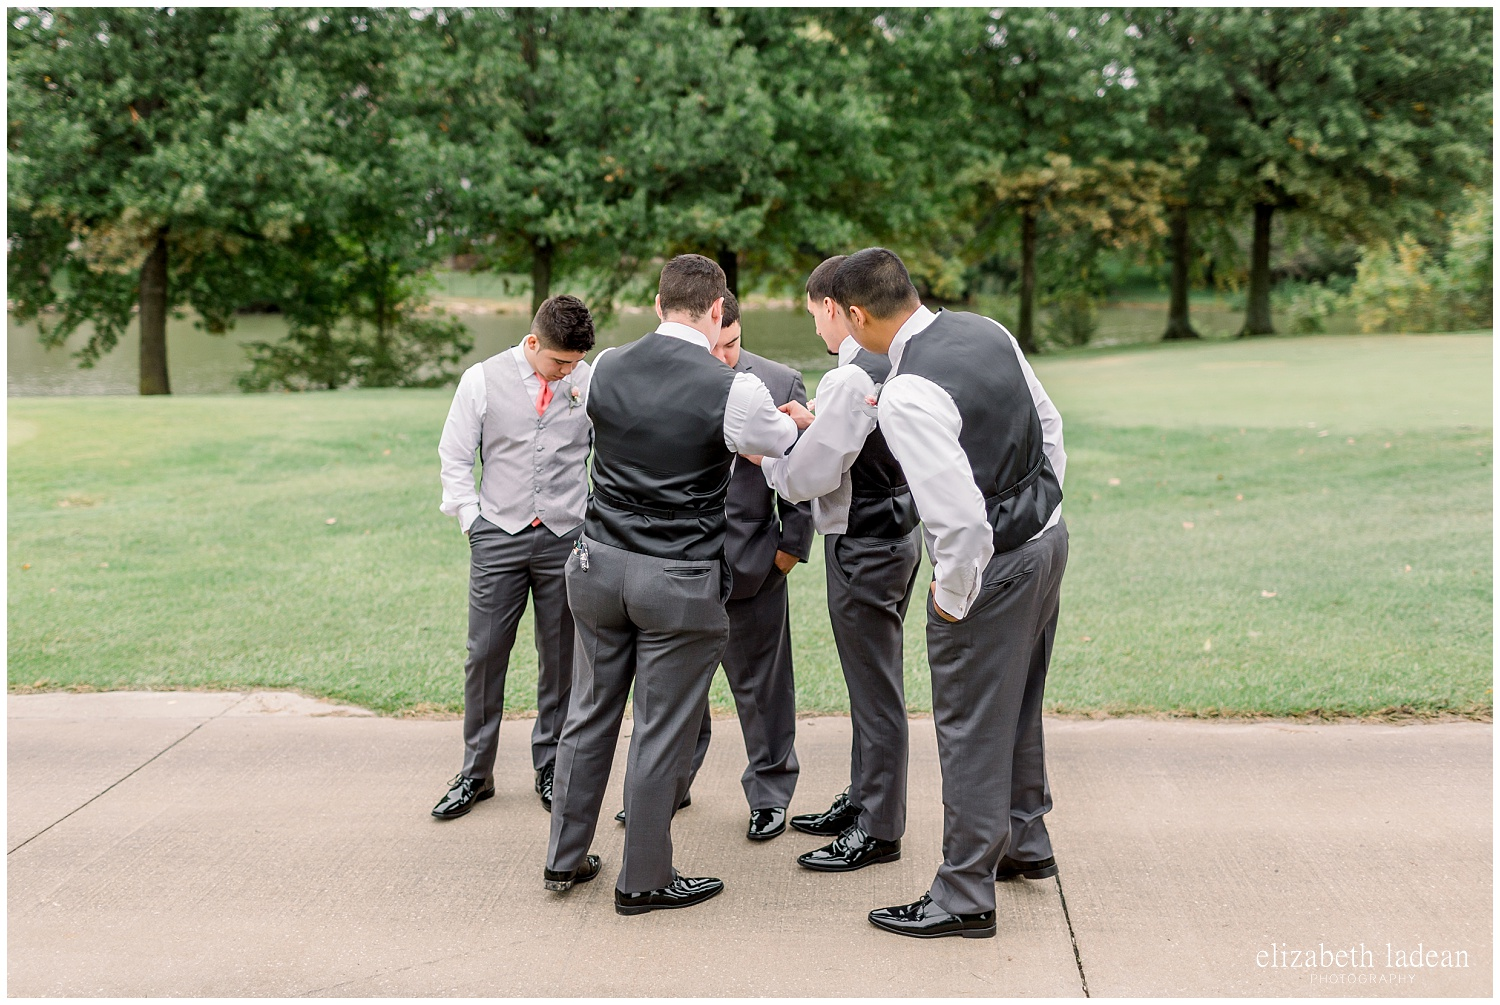 -behind-the-scenes-of-a-wedding-photographer-2018-elizabeth-ladean-photography-photo_3568.jpg